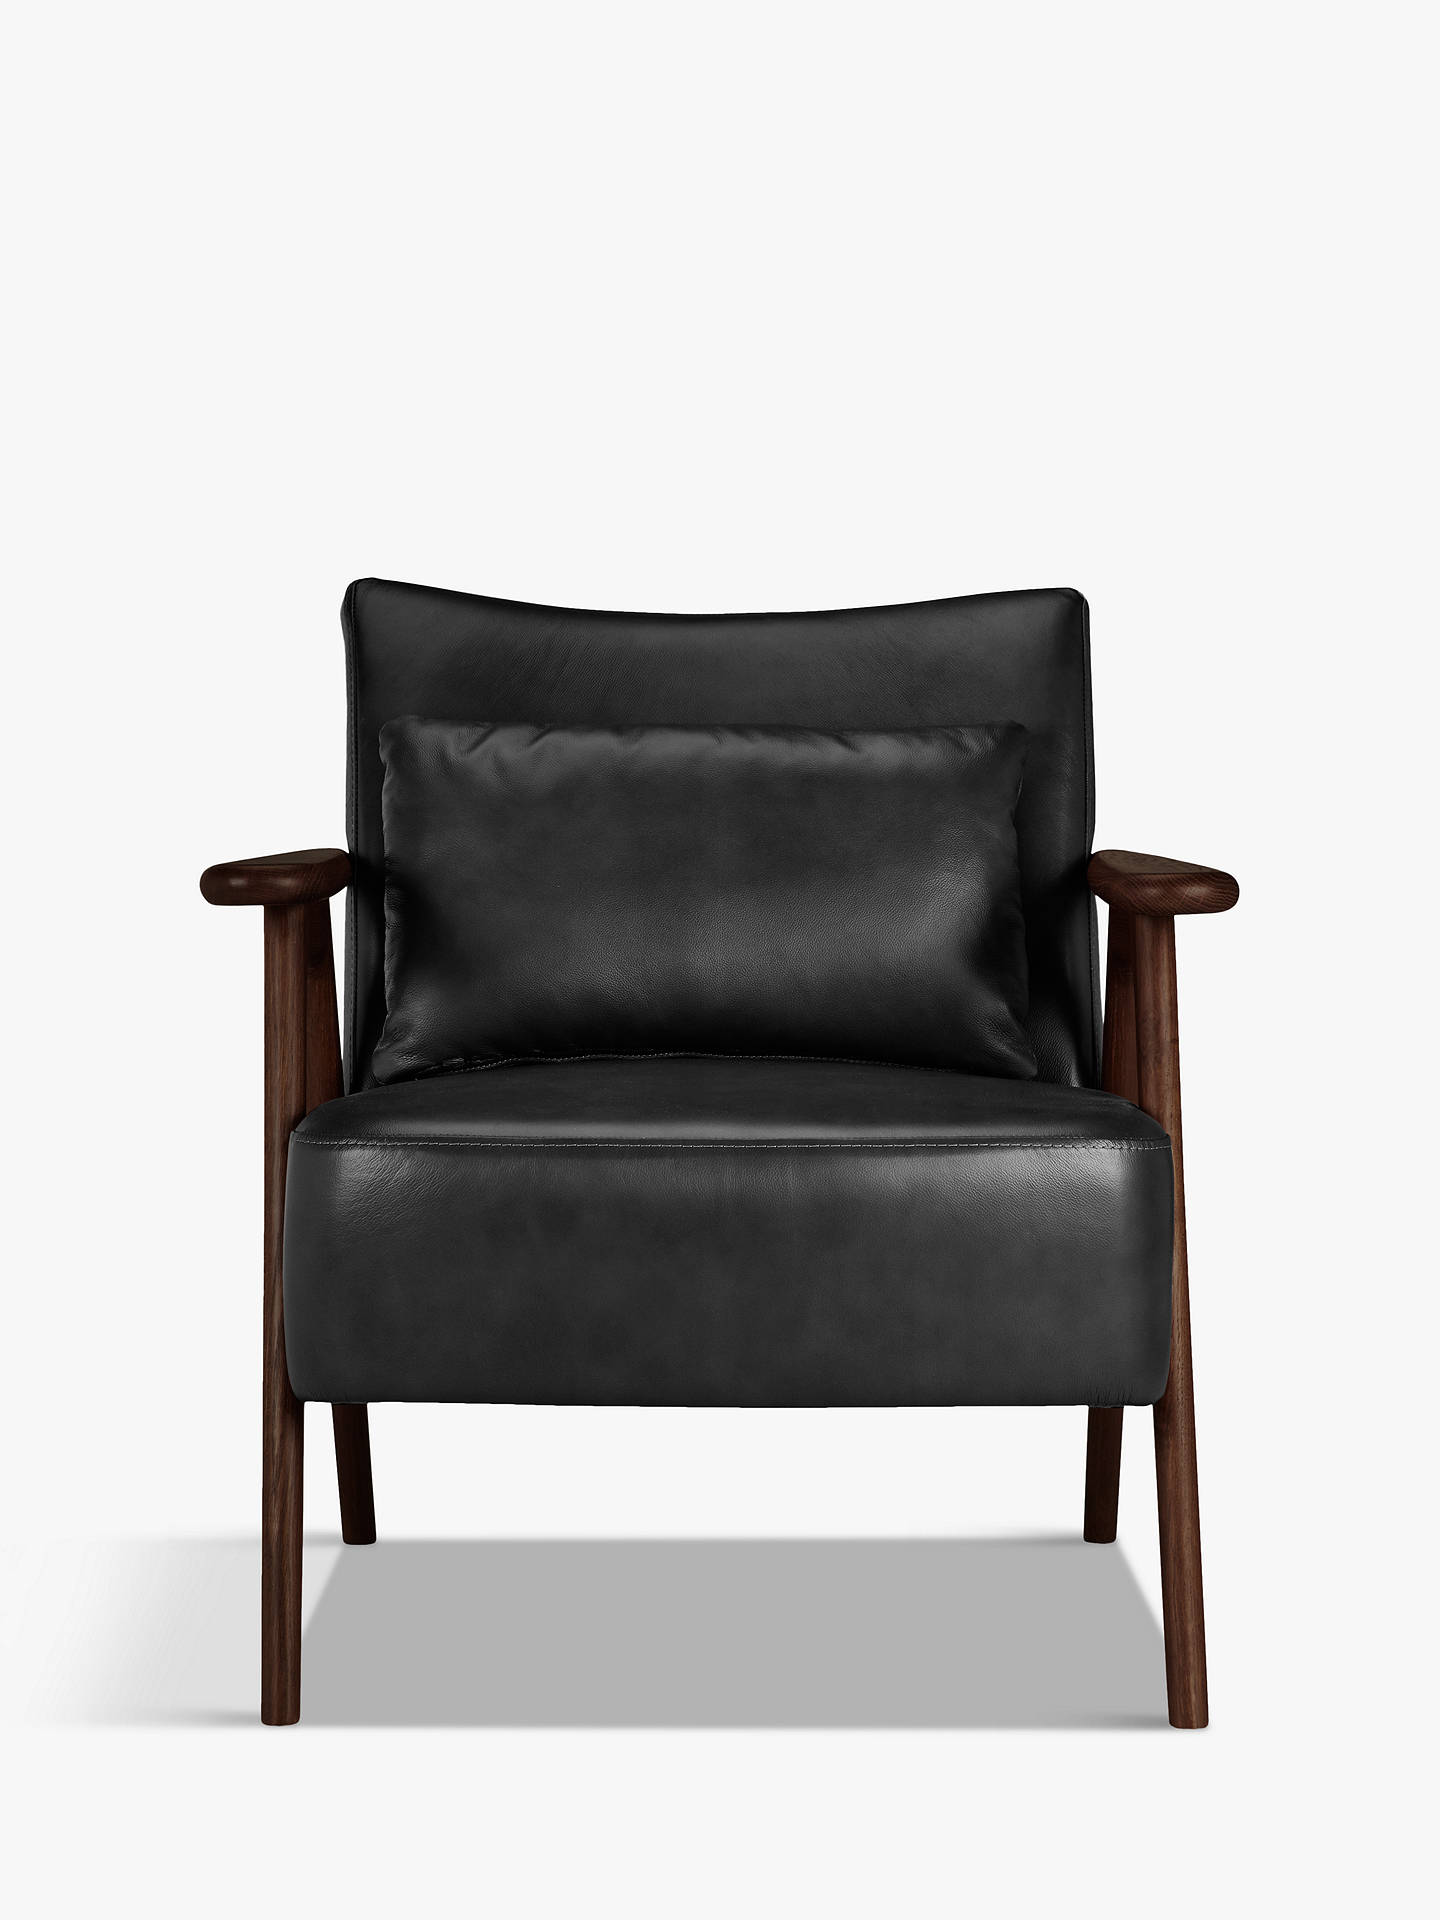 Buy John Lewis & Partners Hendricks Leather Armchair, Dark Wood Frame, Nature Black Online at johnlewis.com